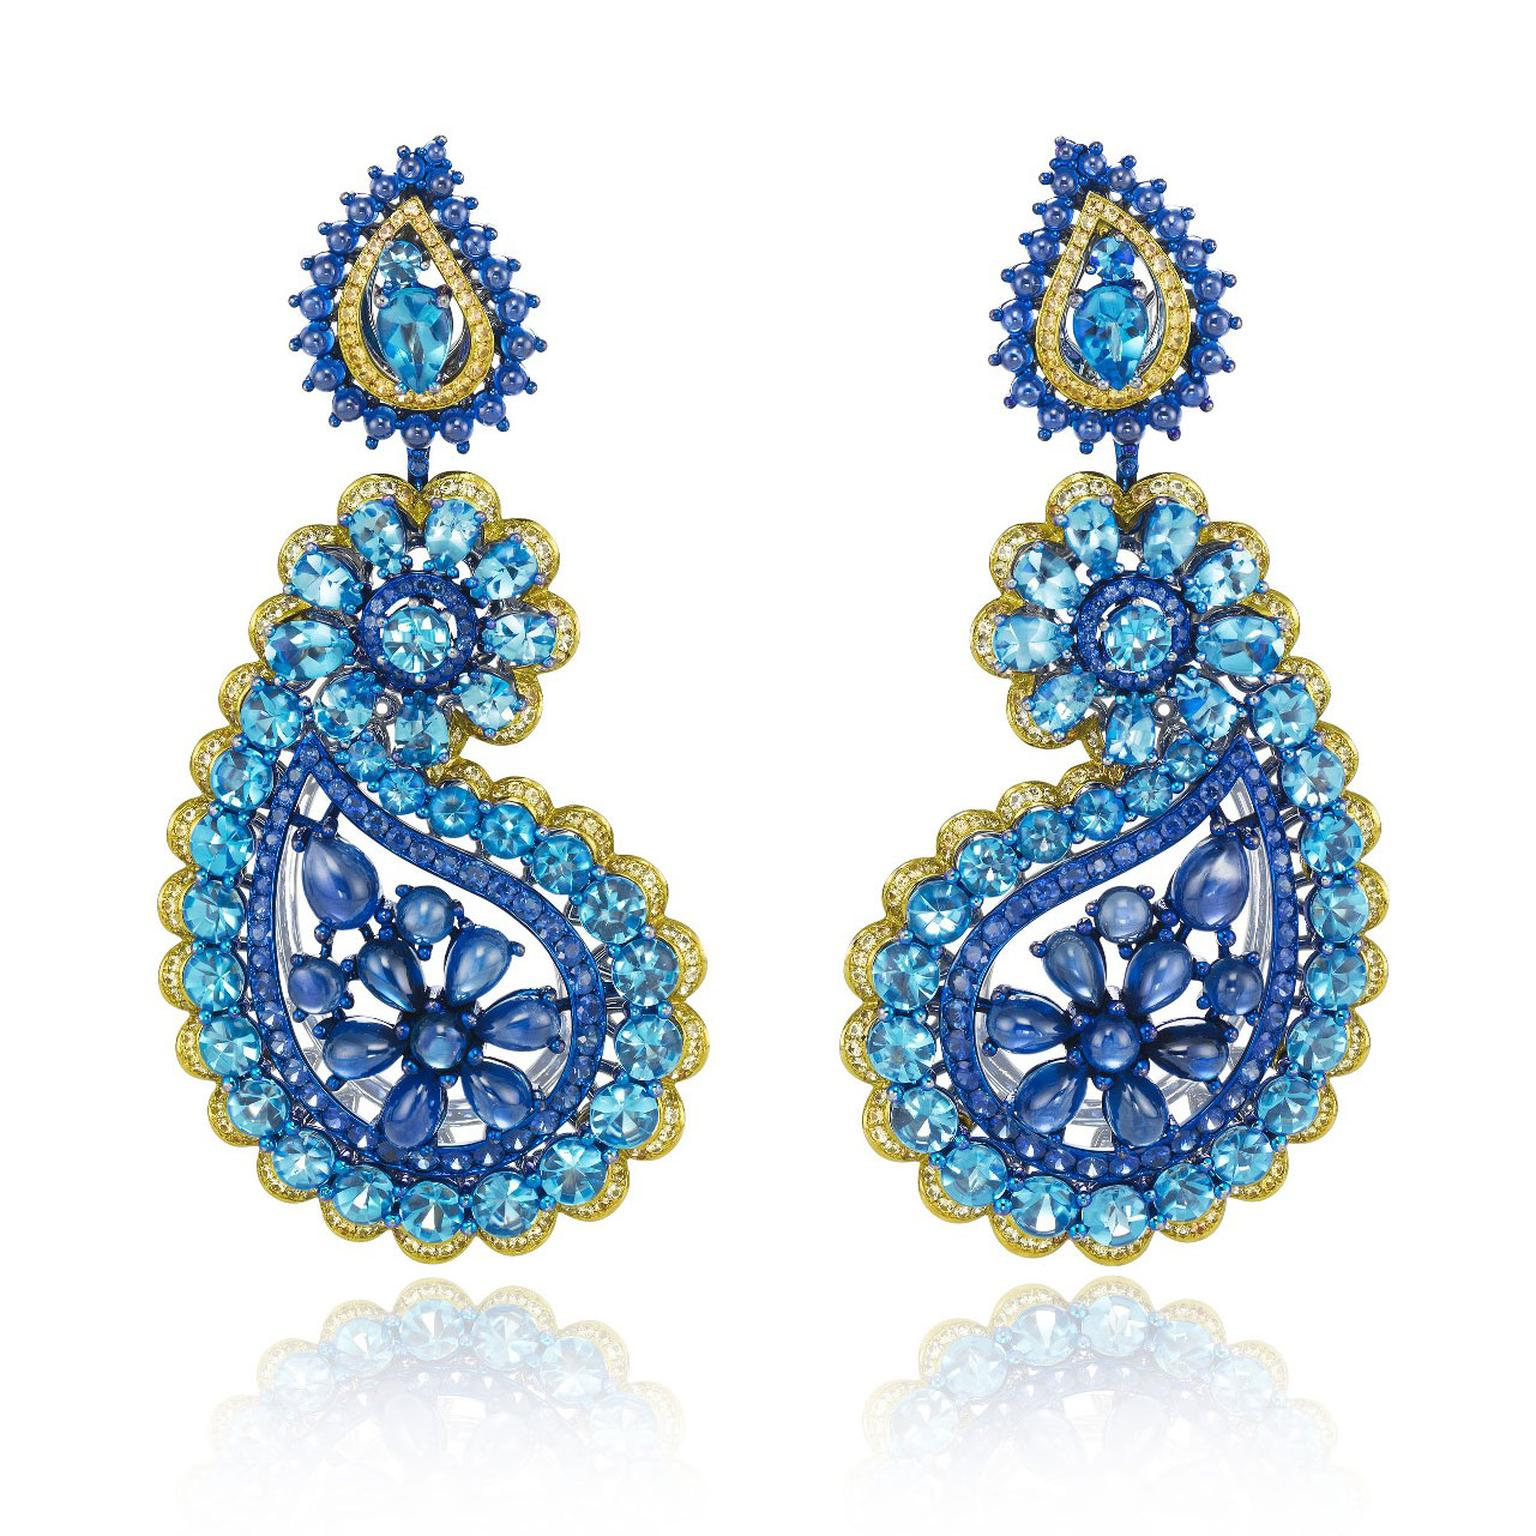 Chopard Red Carpet earrings with topaz, sapphires, orange and blue sapphires